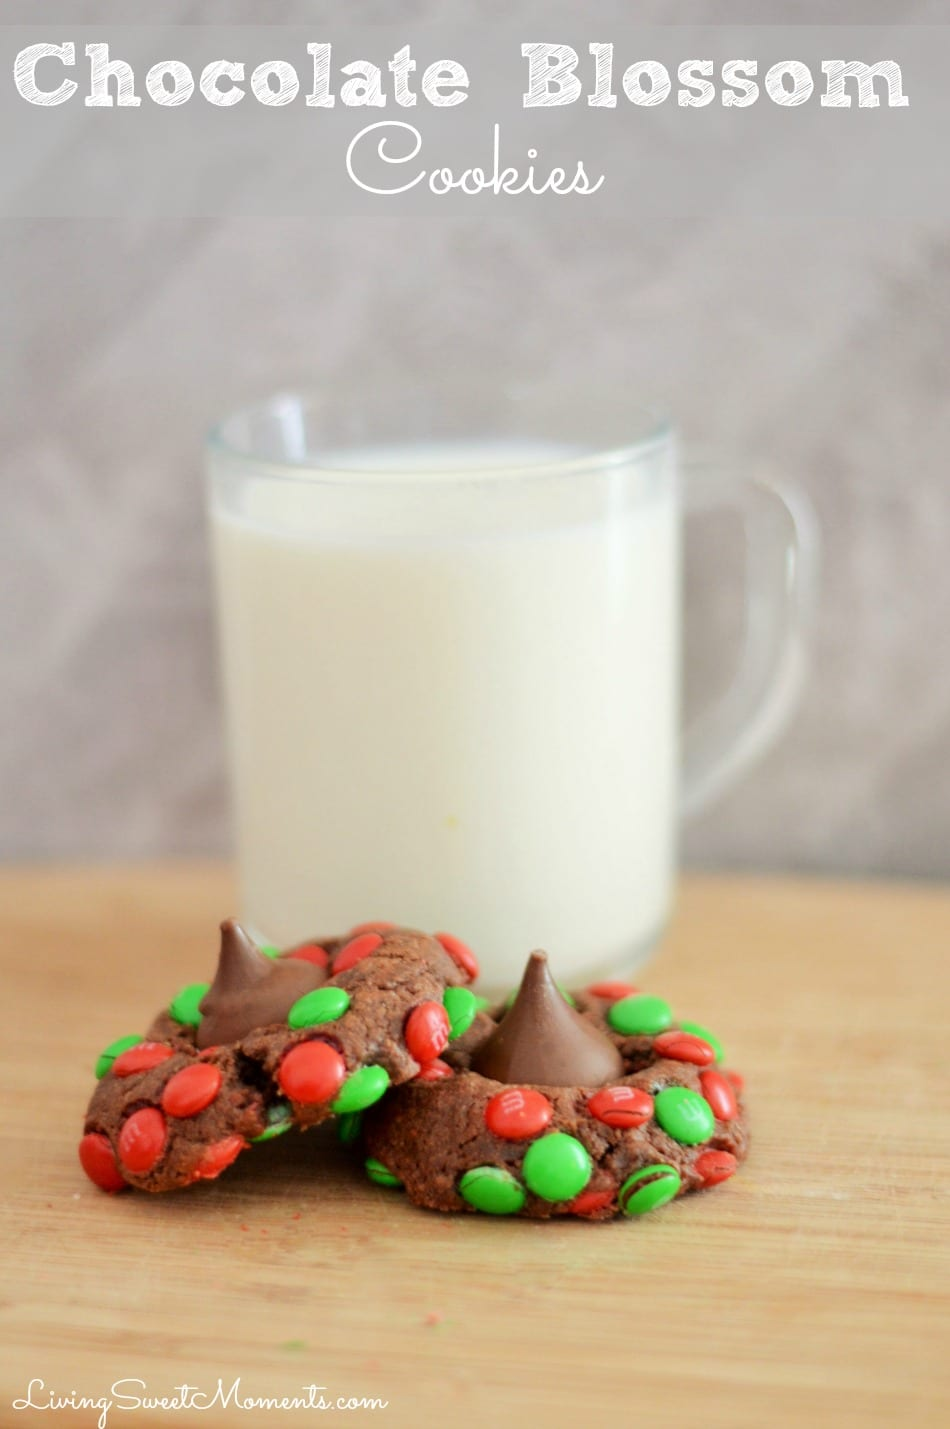 Delicious Chocolate Blossom Cookies made with M&M's and Chocolate Kisses! Easy to make and delicious. The cookies are soft on the inside and crunchy outside